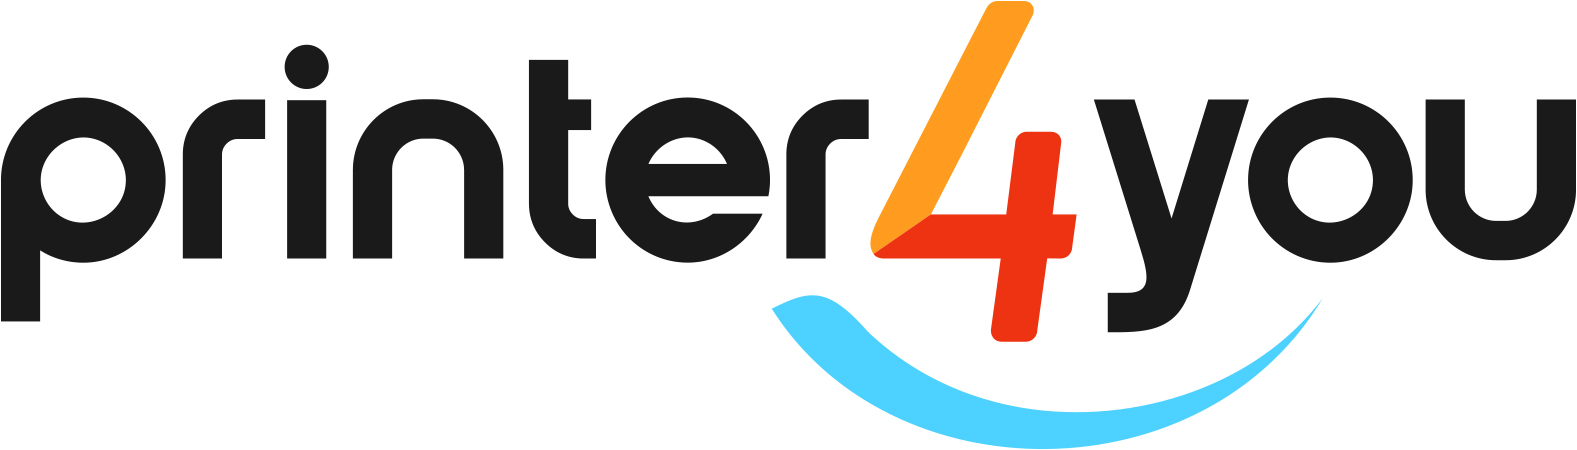 printer4you.com Logo